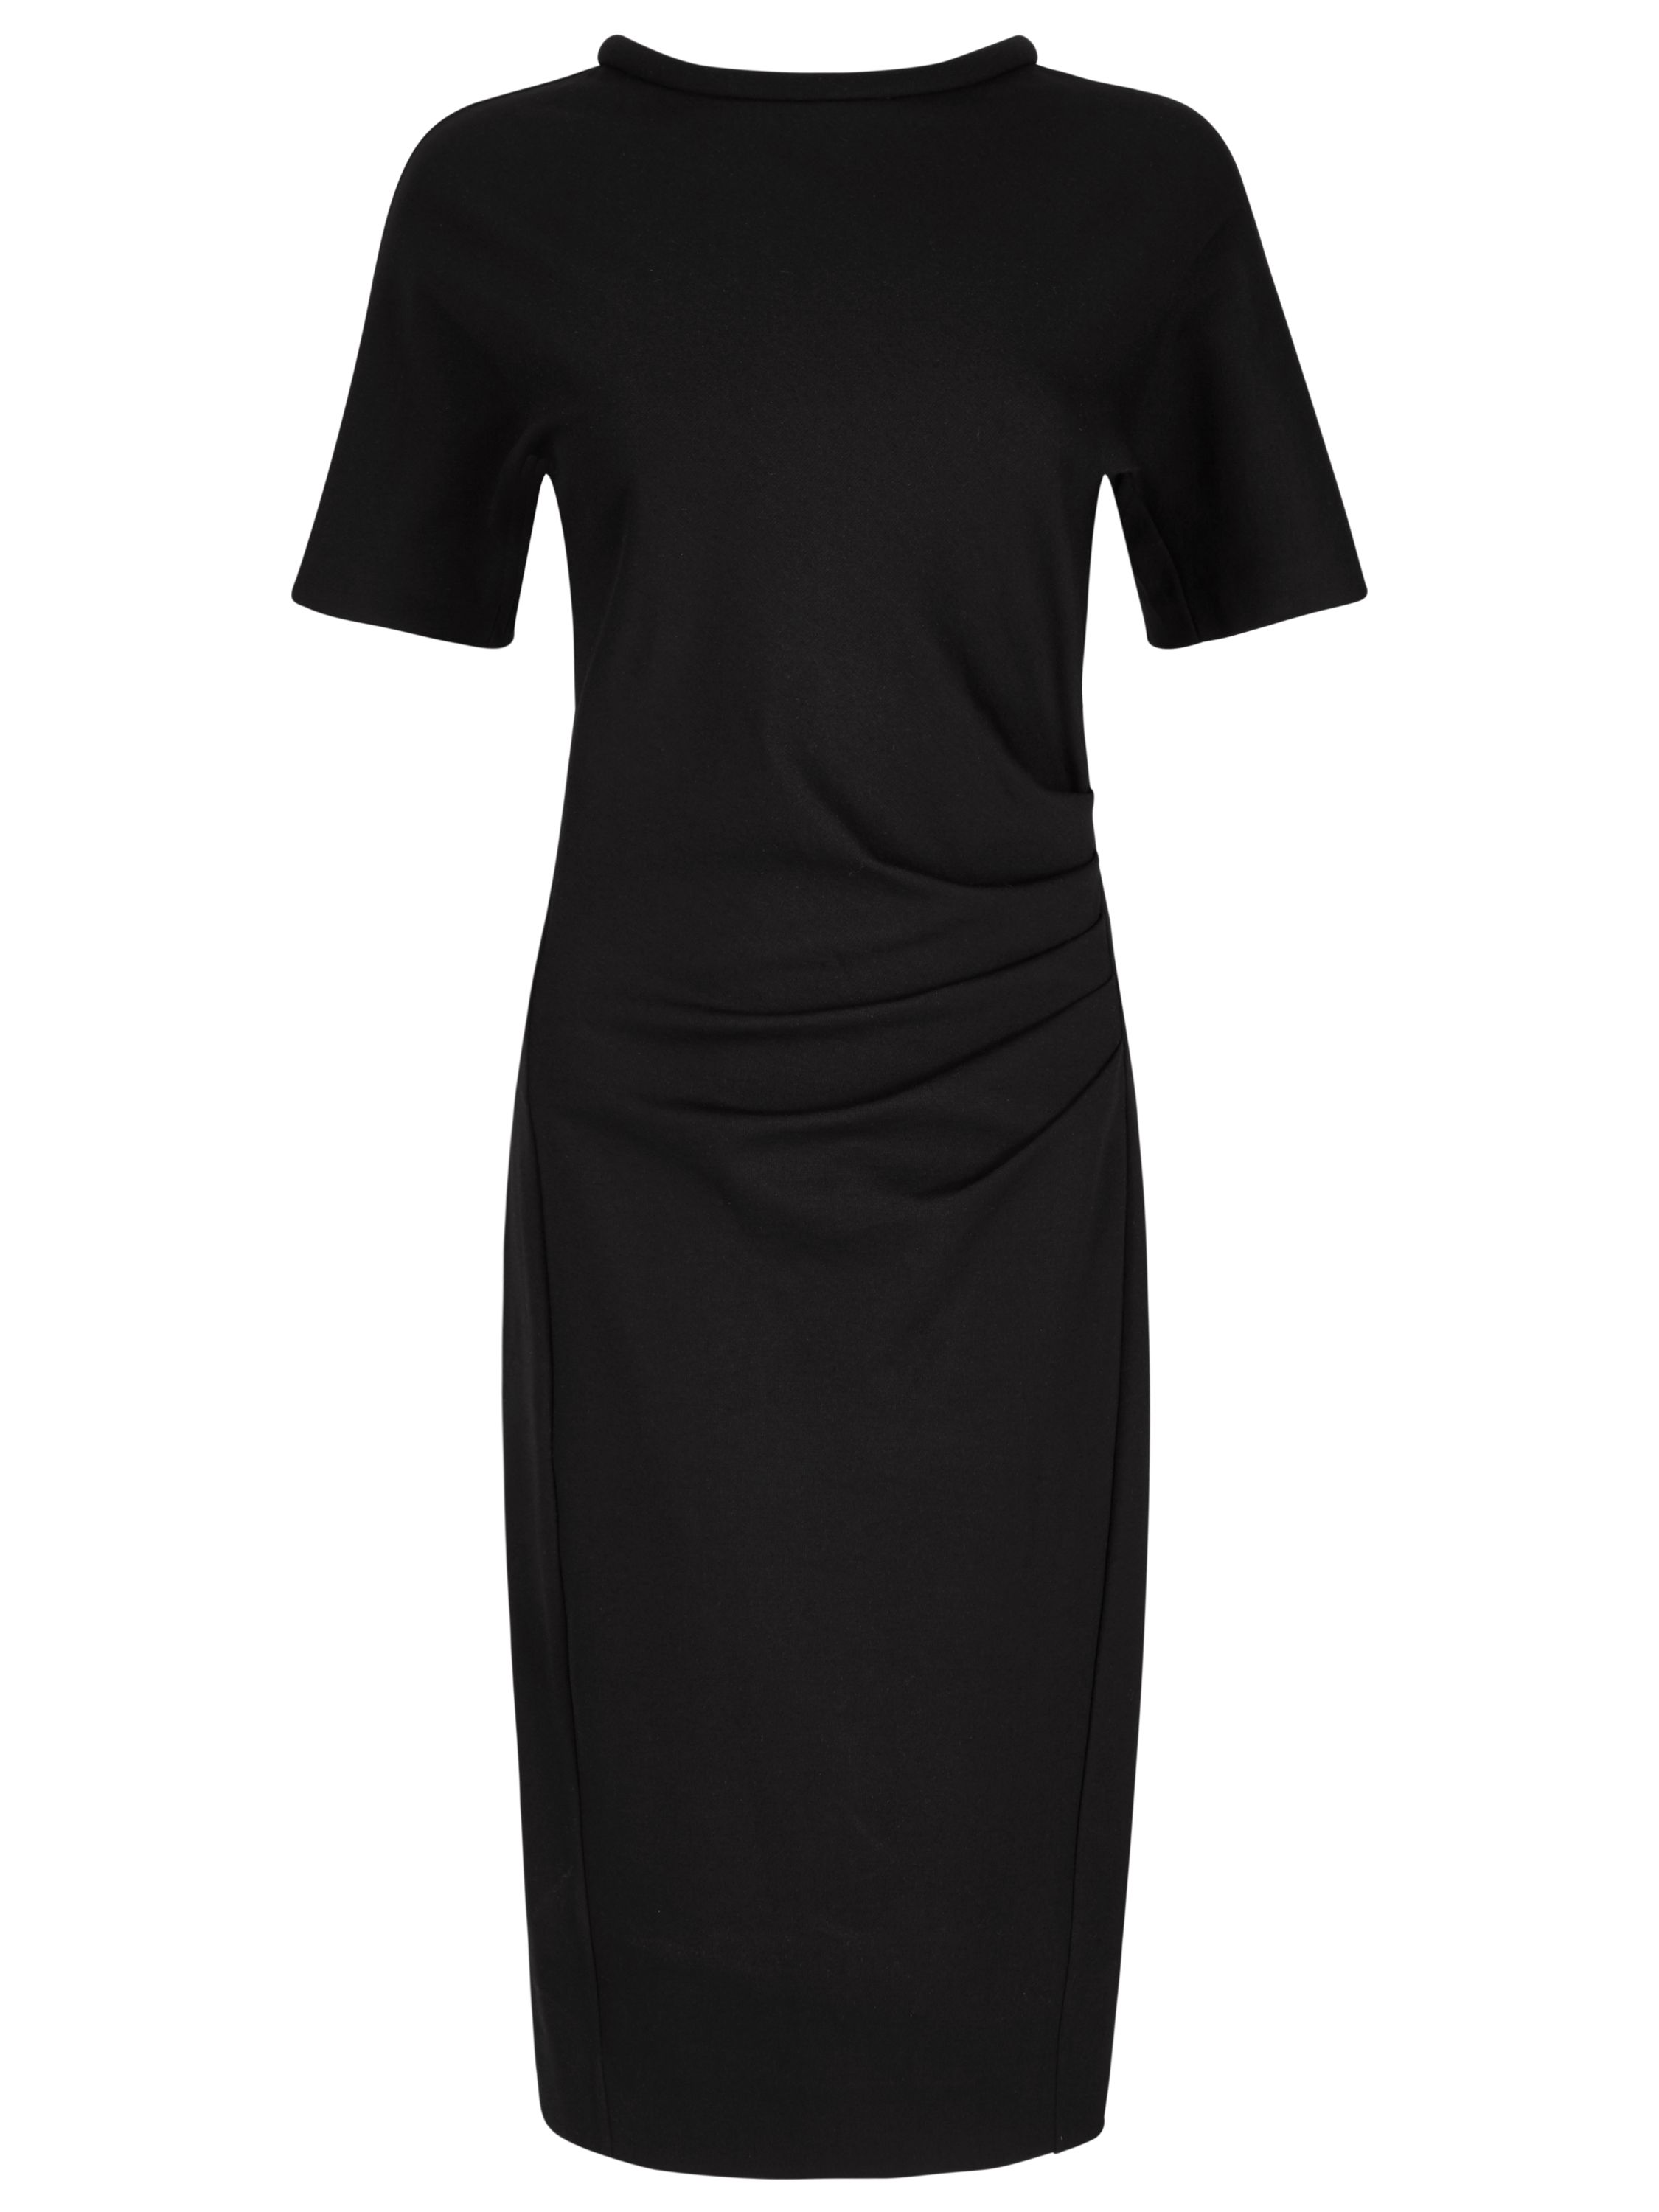 Winser London Miracle Short Sleeve Dress, Black